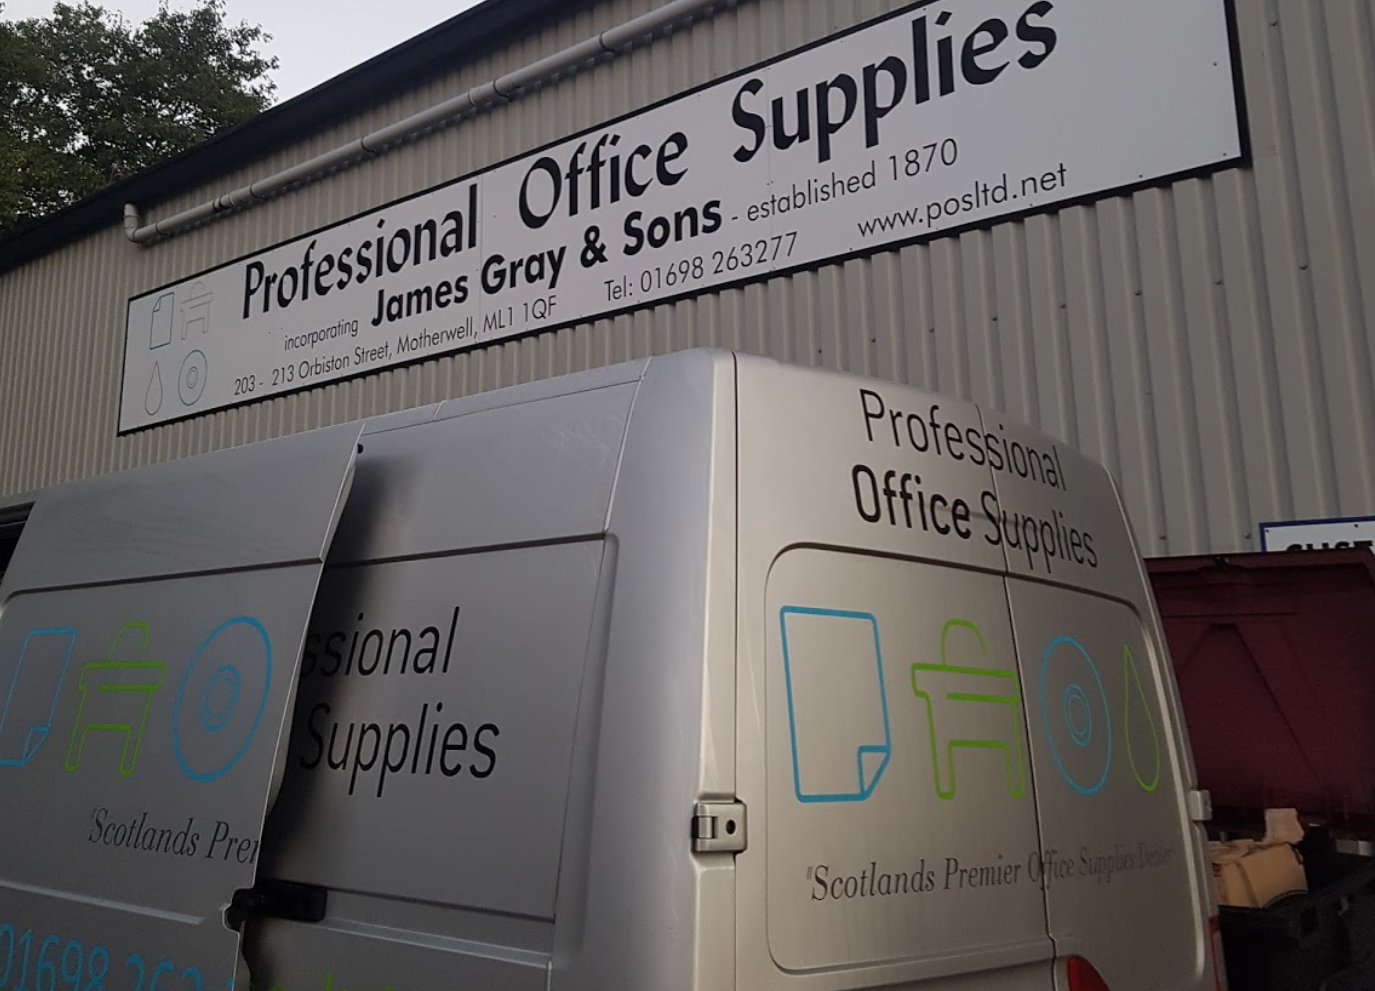 professional-office-supplies